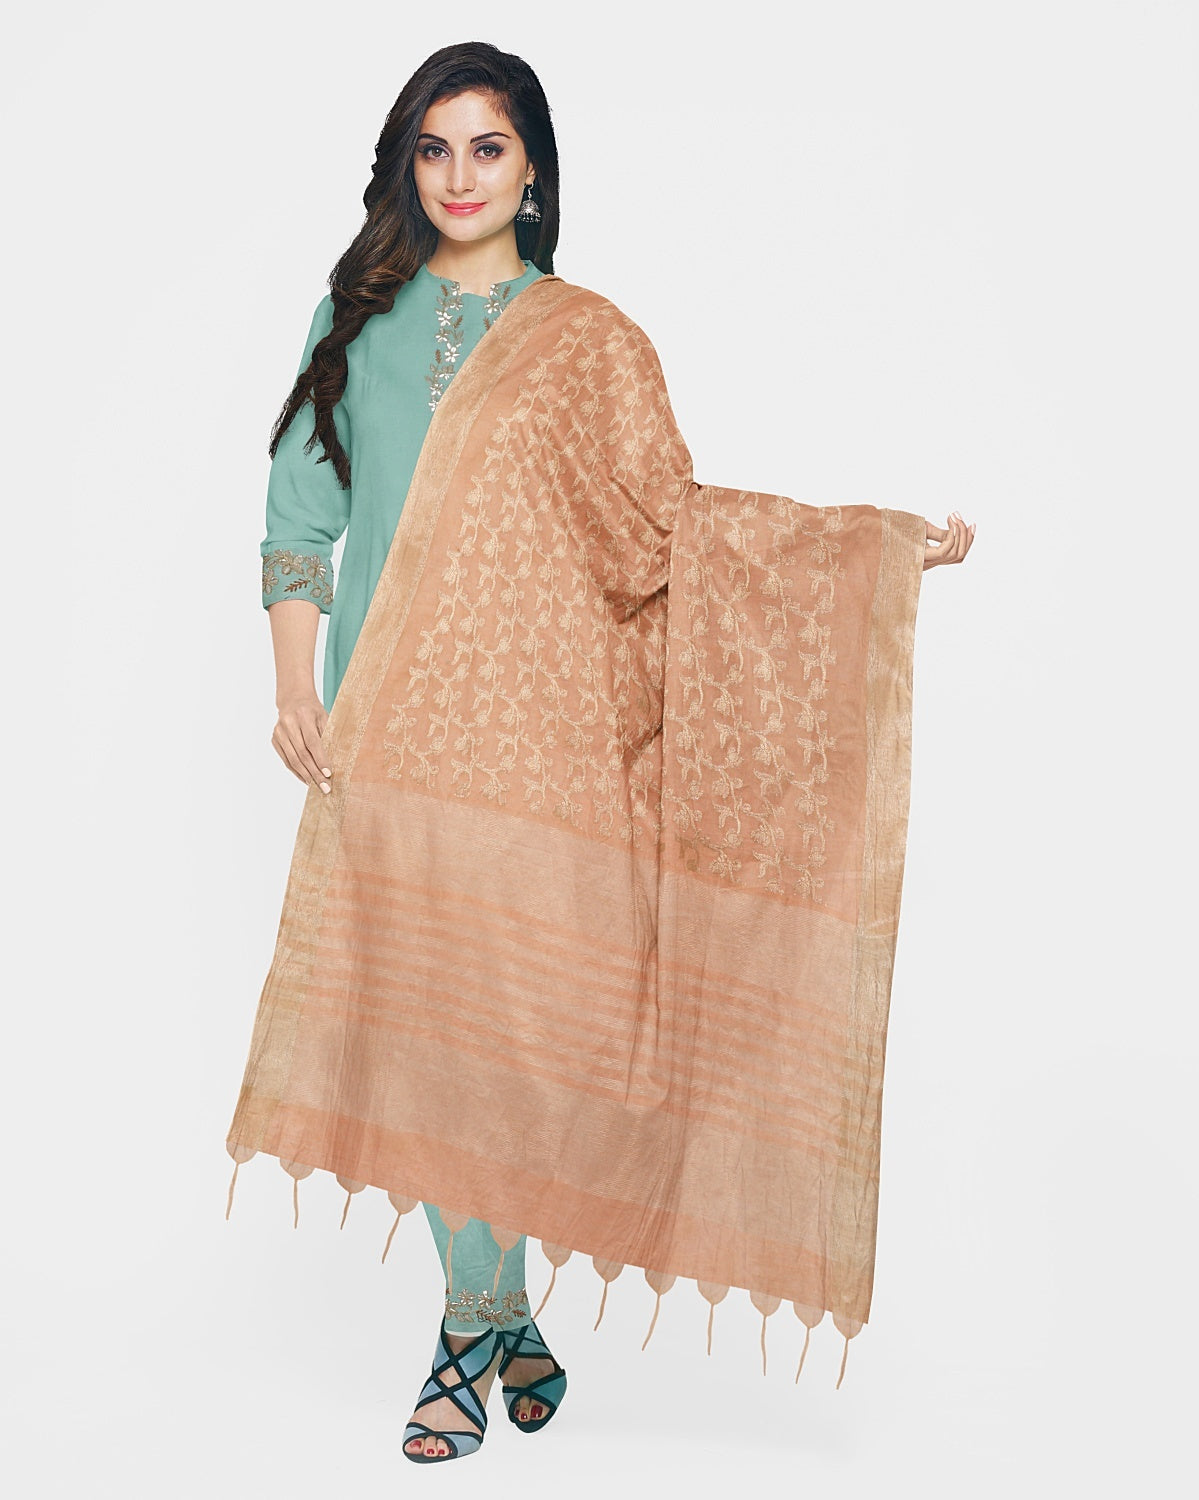 Sea Green & Peach Gota Patti Suit Fabric Set